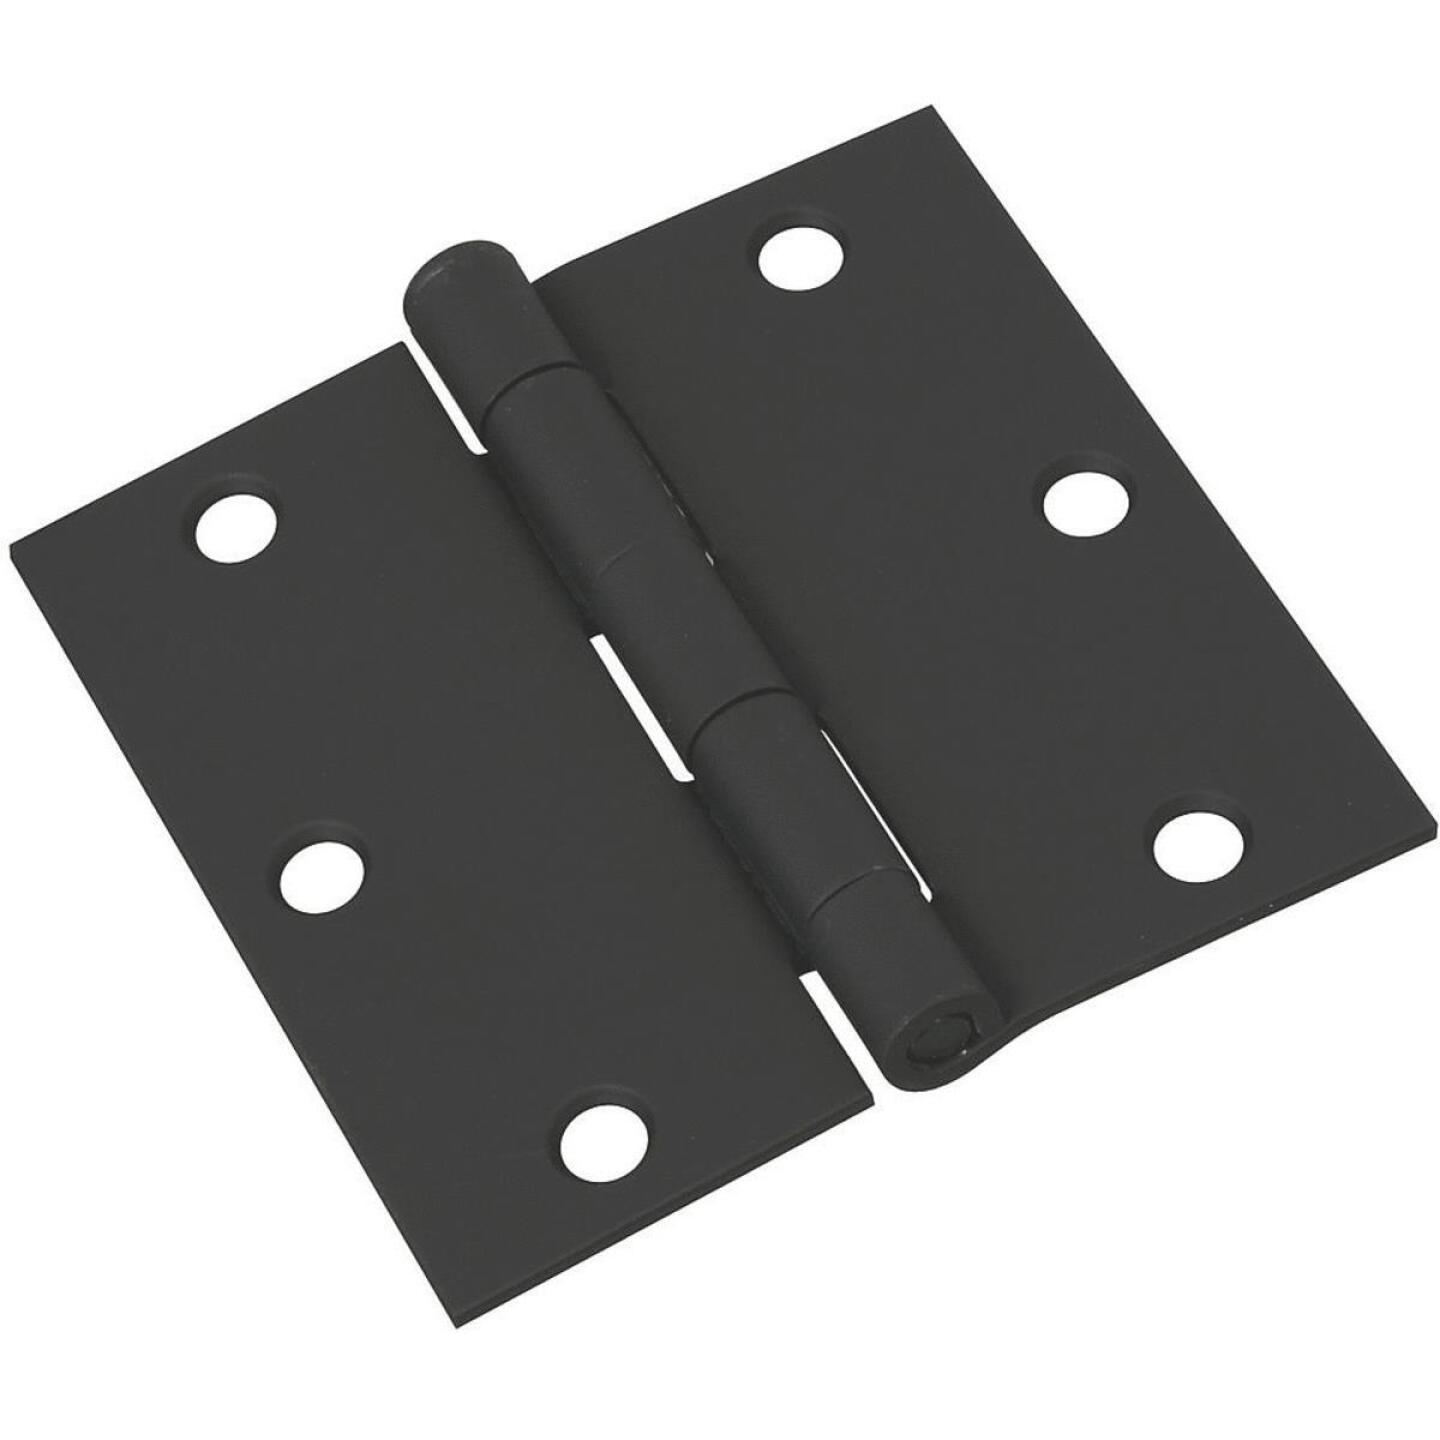 National 3-1/2 In. Square Black Door Hinge Image 1